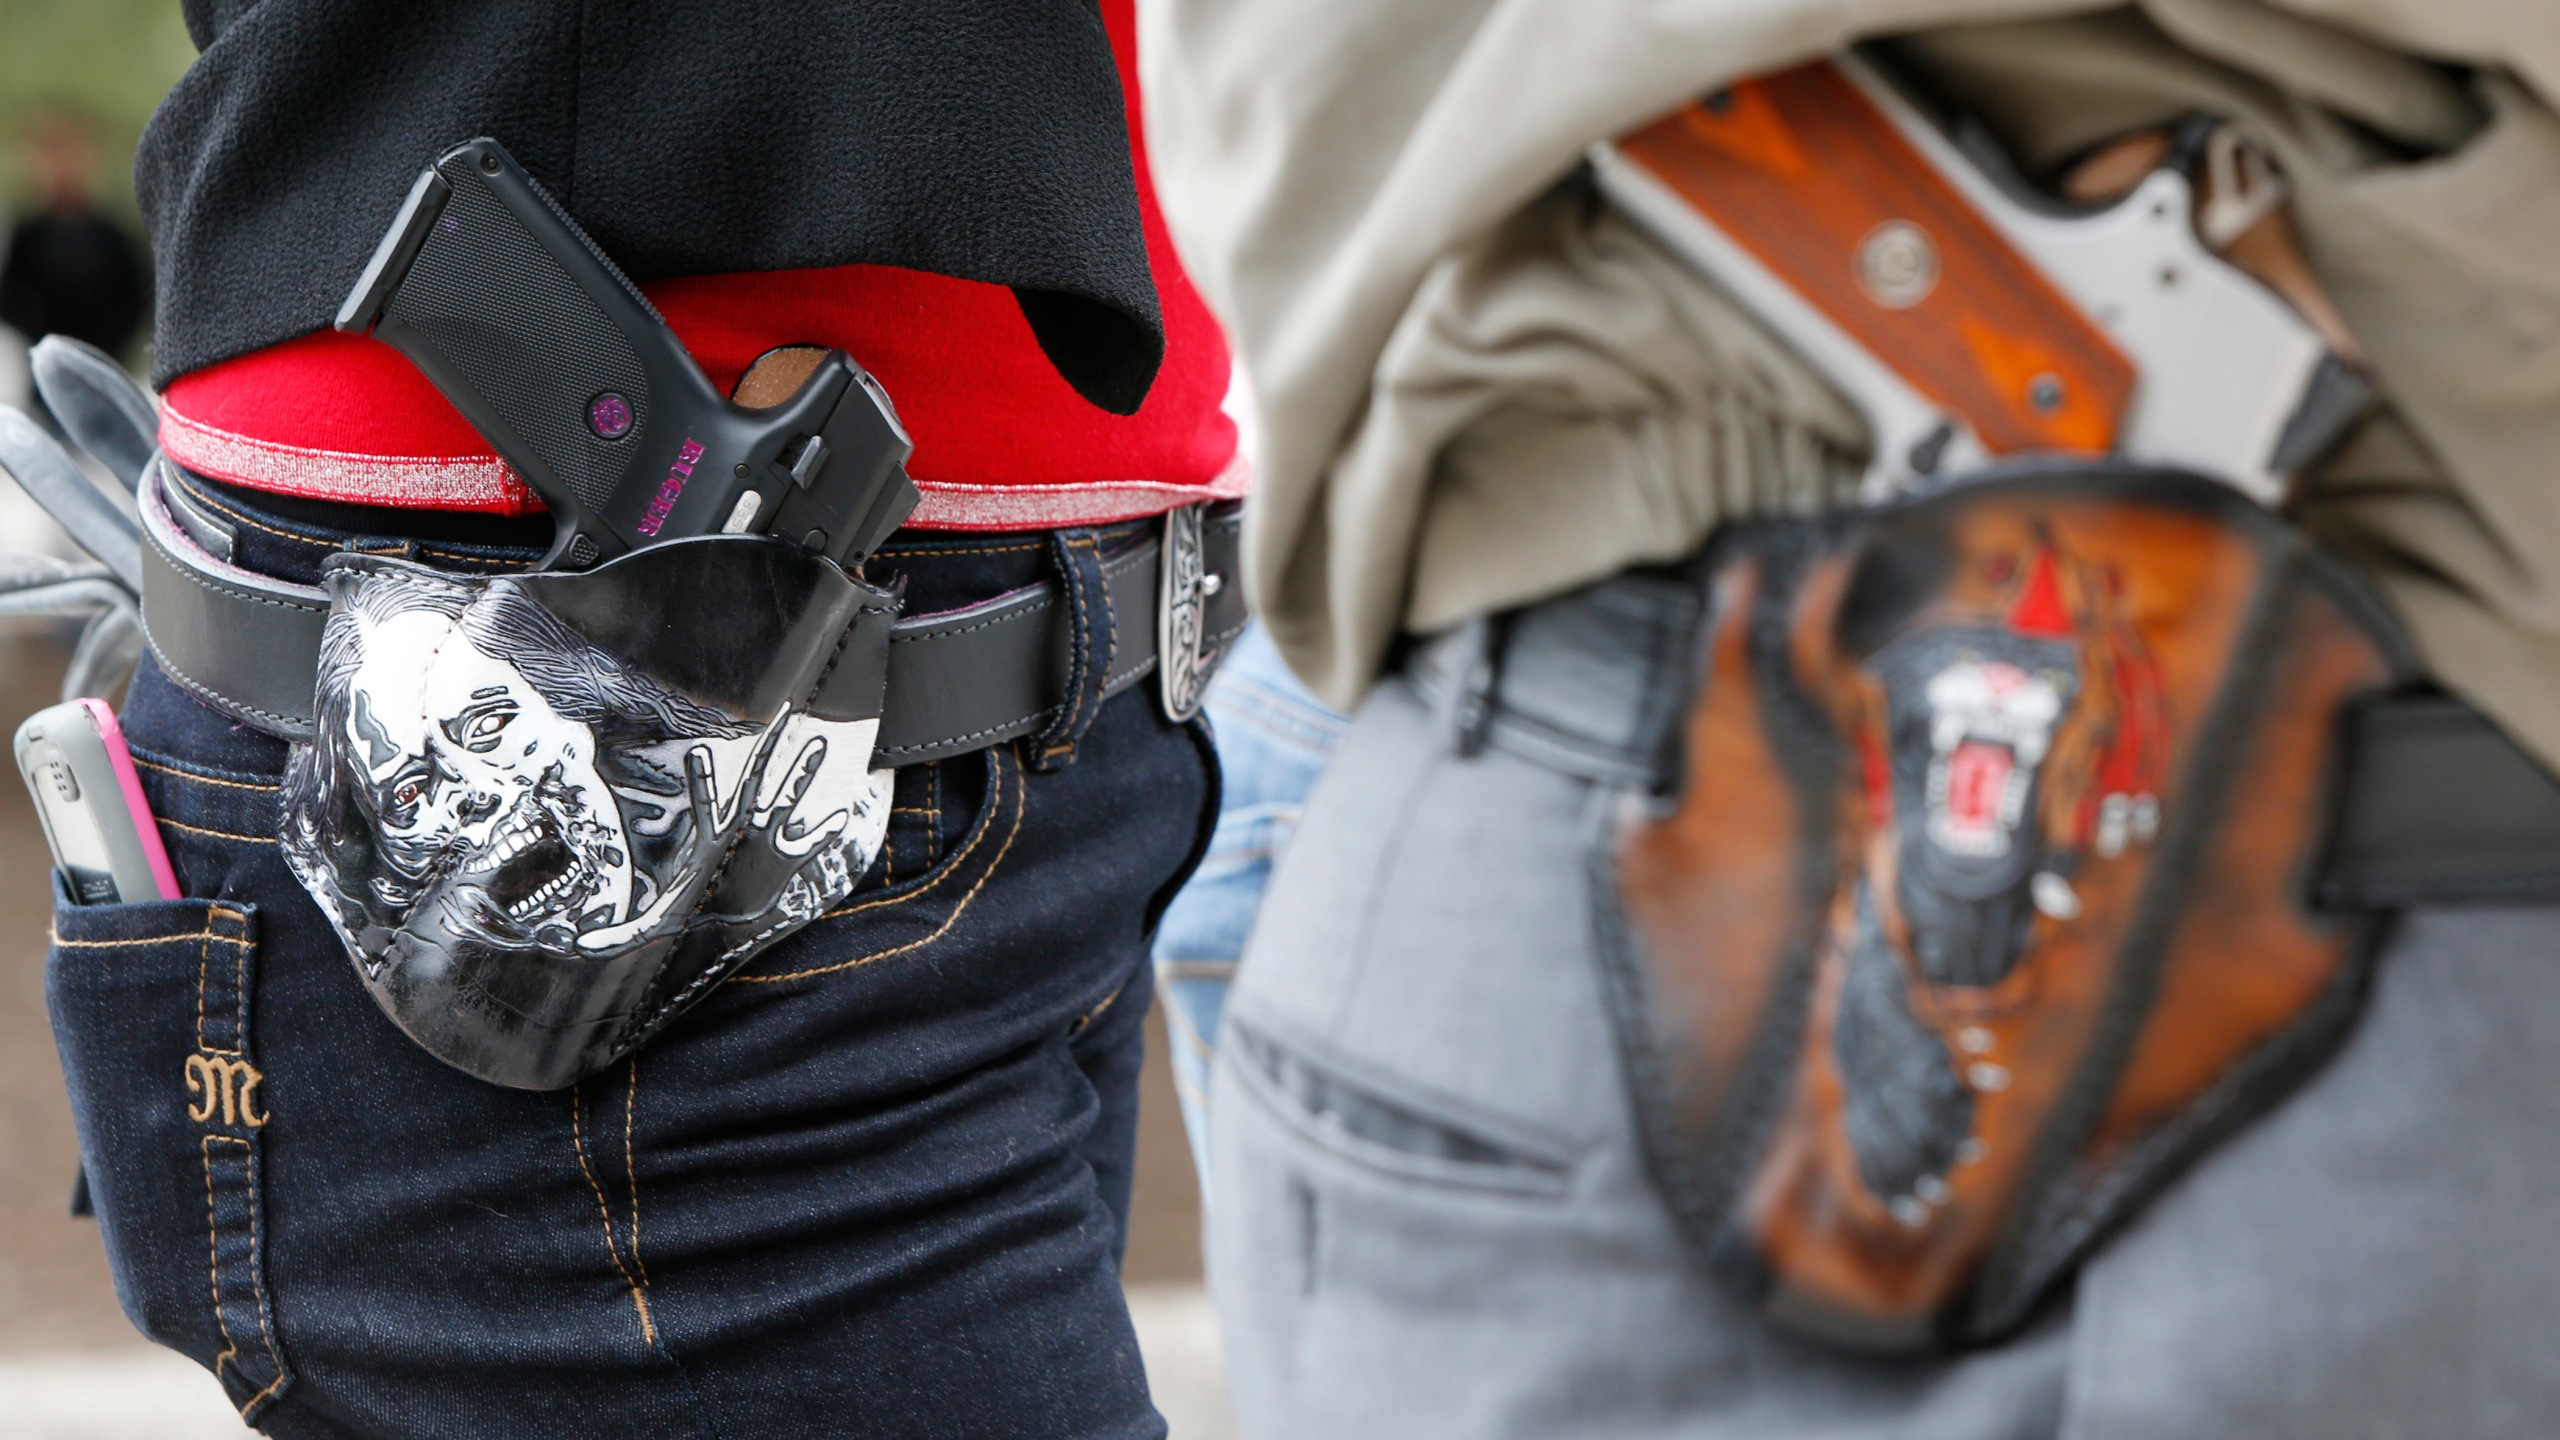 Art and Diana Ramirez of Austin with their pistols in custom-made holsters during an open-carry rally at the Texas State Capitol on Jan. 1, 2016 in Austin, Texas. (Credit: Erich Schlegel/Getty Images)